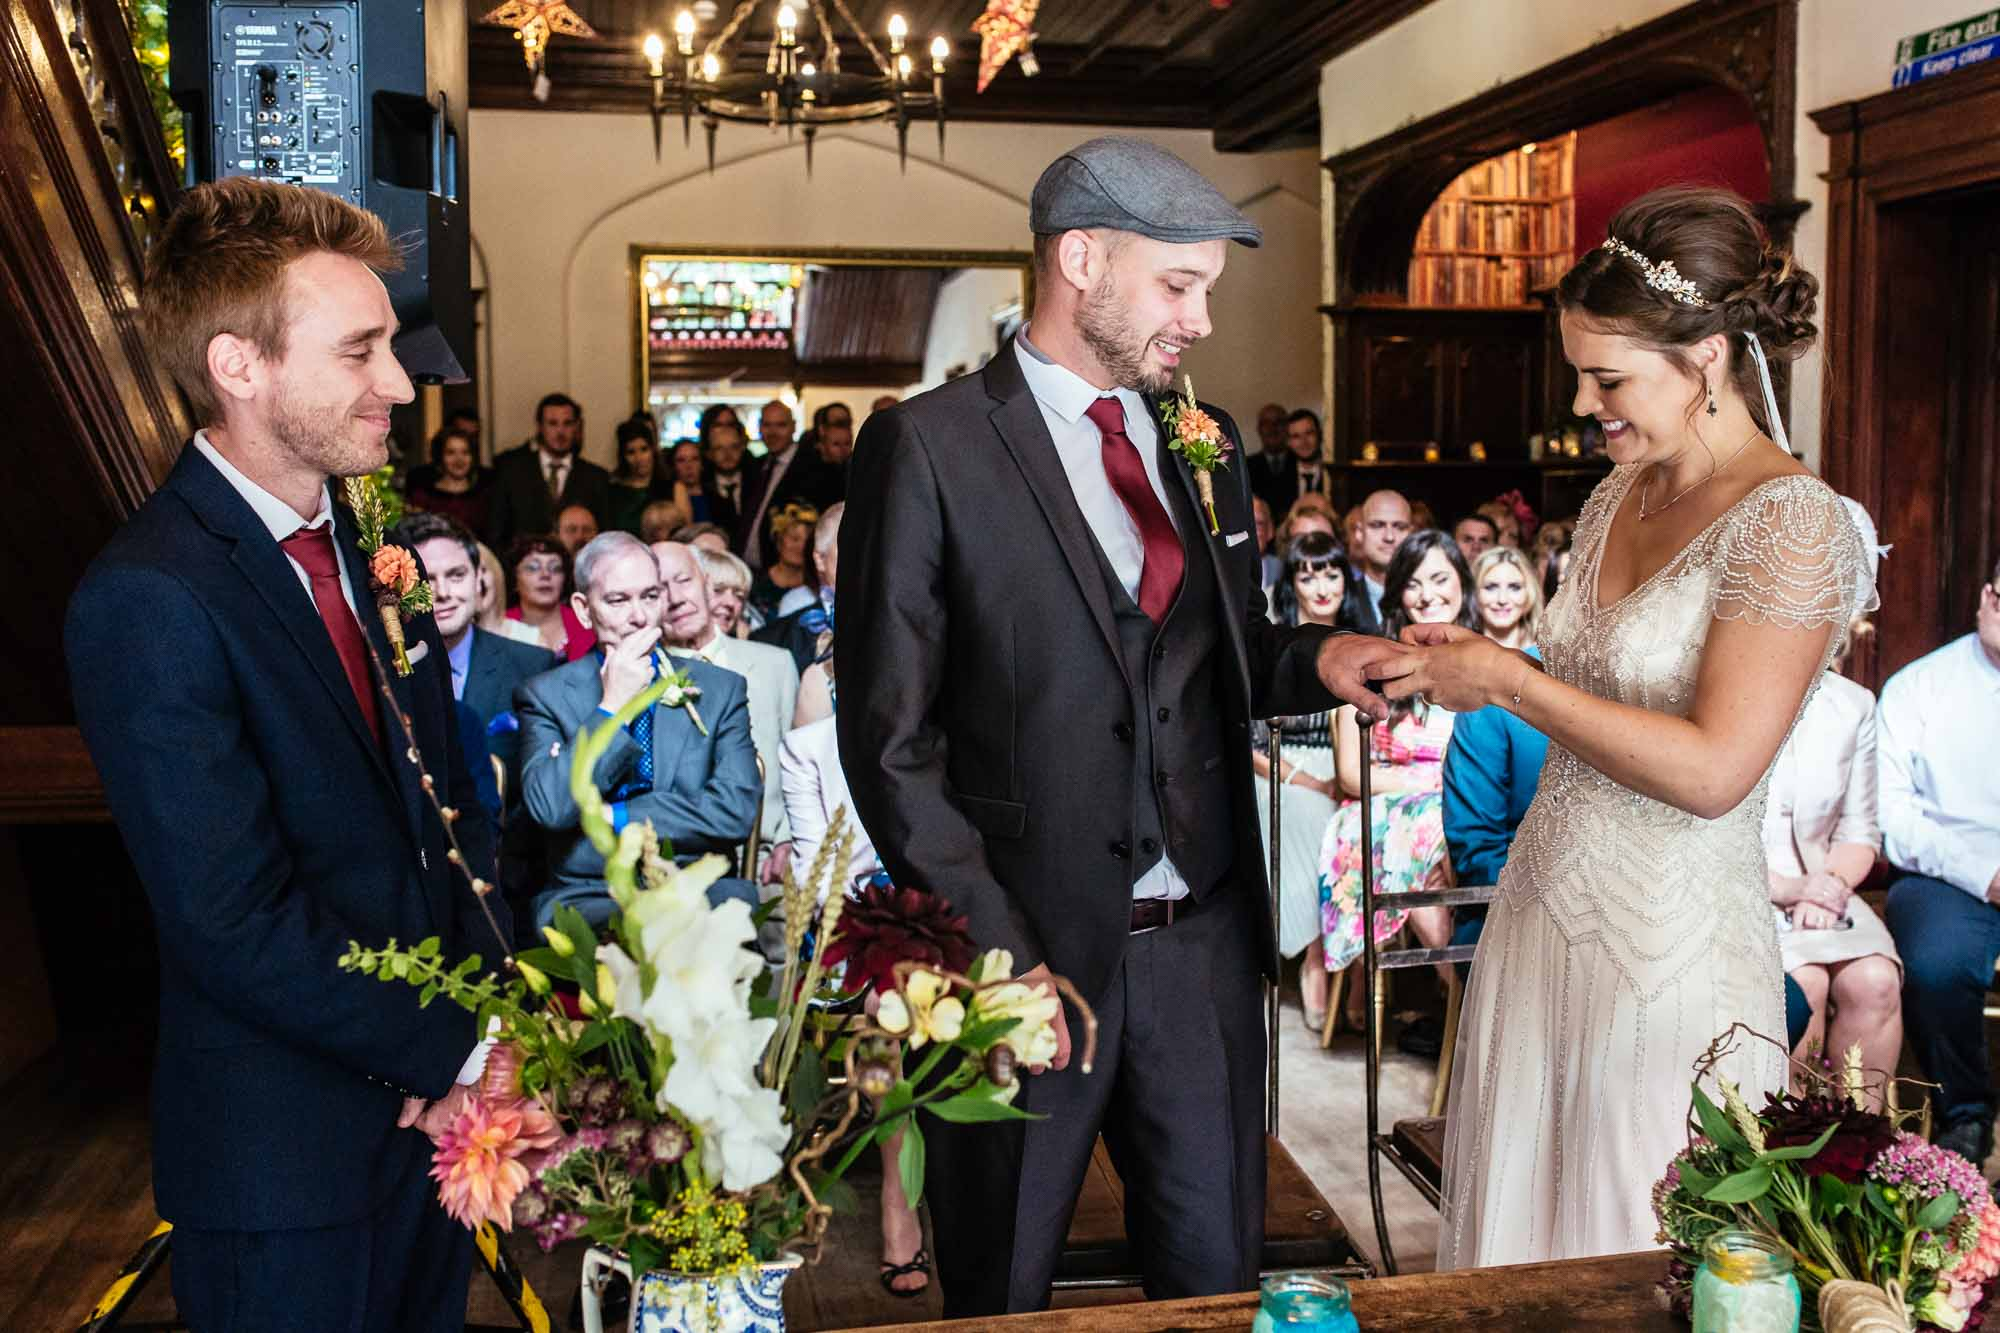 Wedding Ceremonies Hargate Hall Peak District